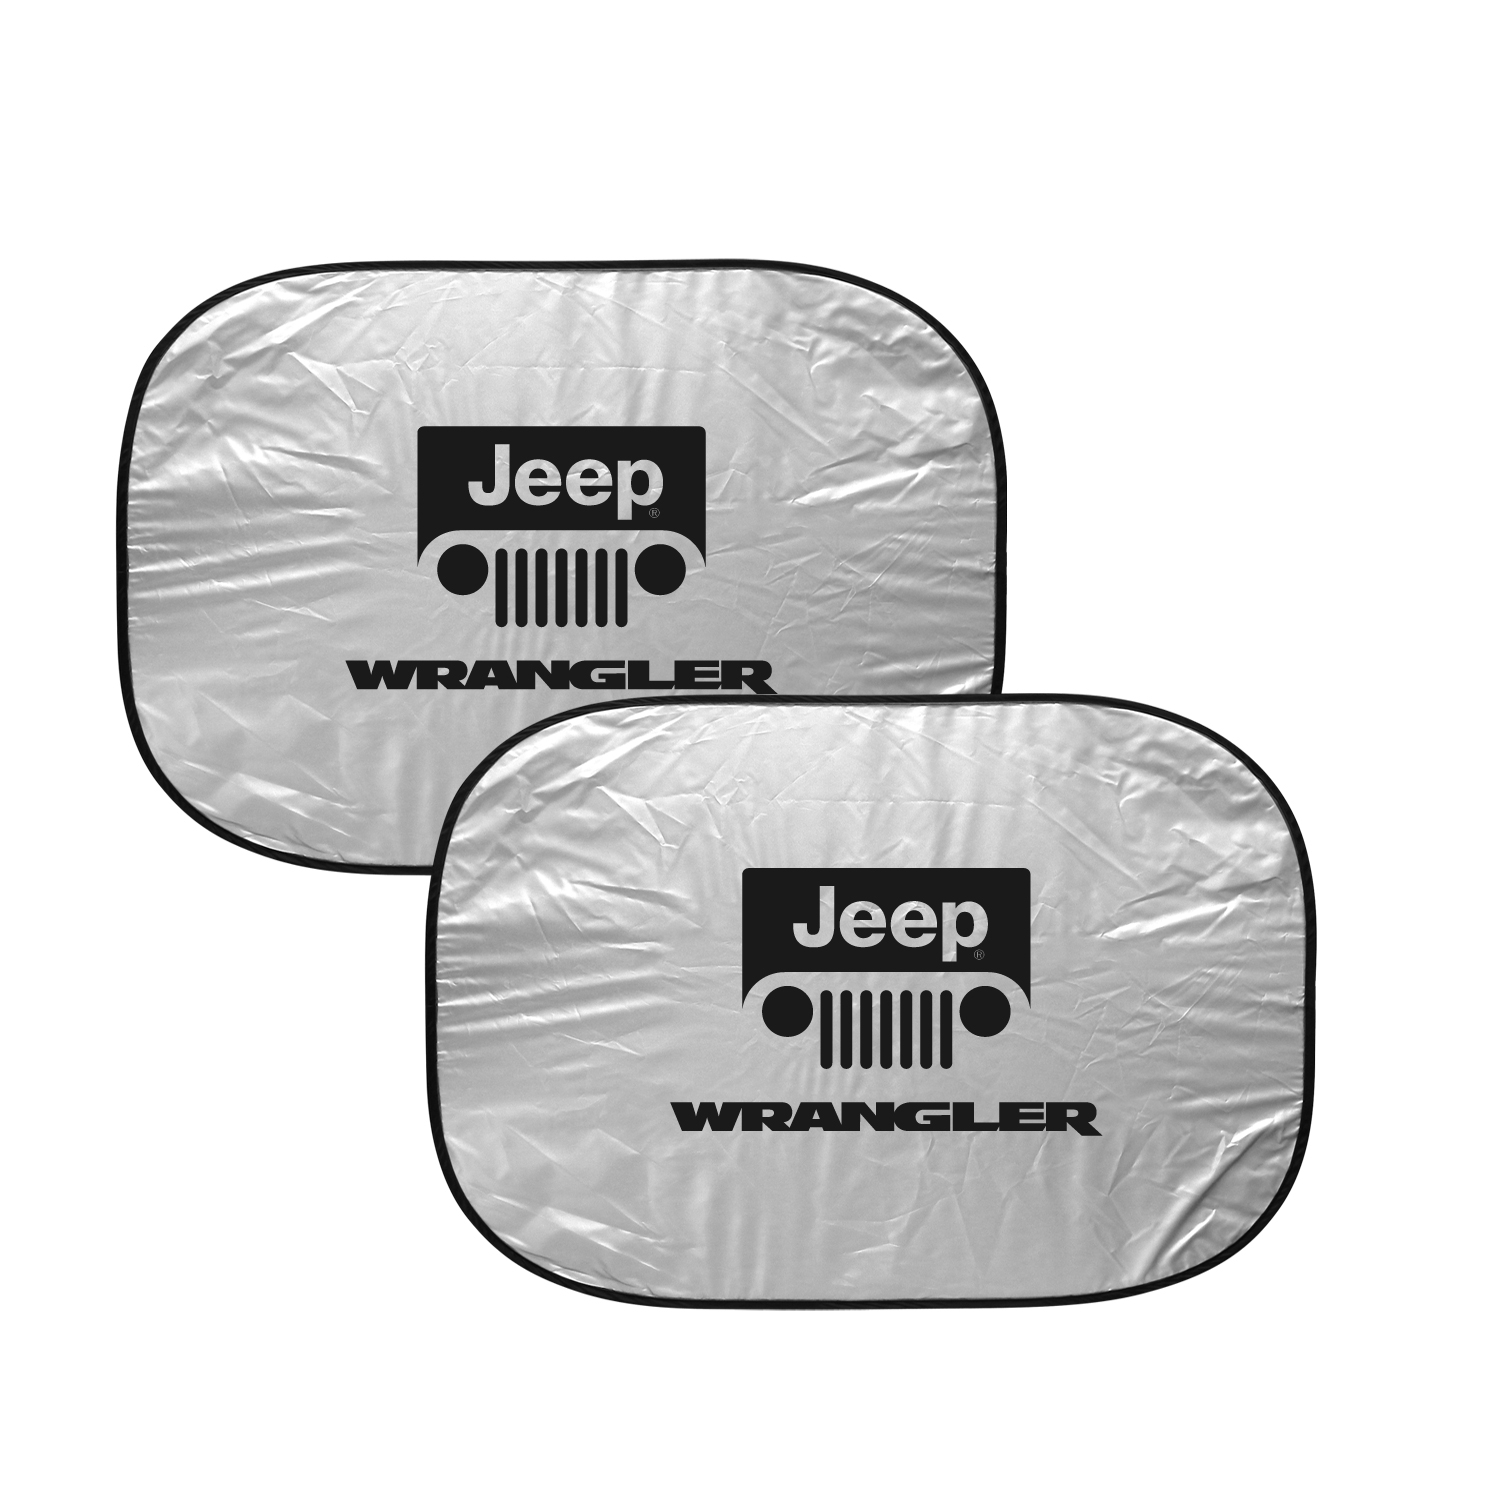 "Jeep Wrangler Dual Panels 2-28"" W x 24"" L Easy Folding Windshield Sun Shade"